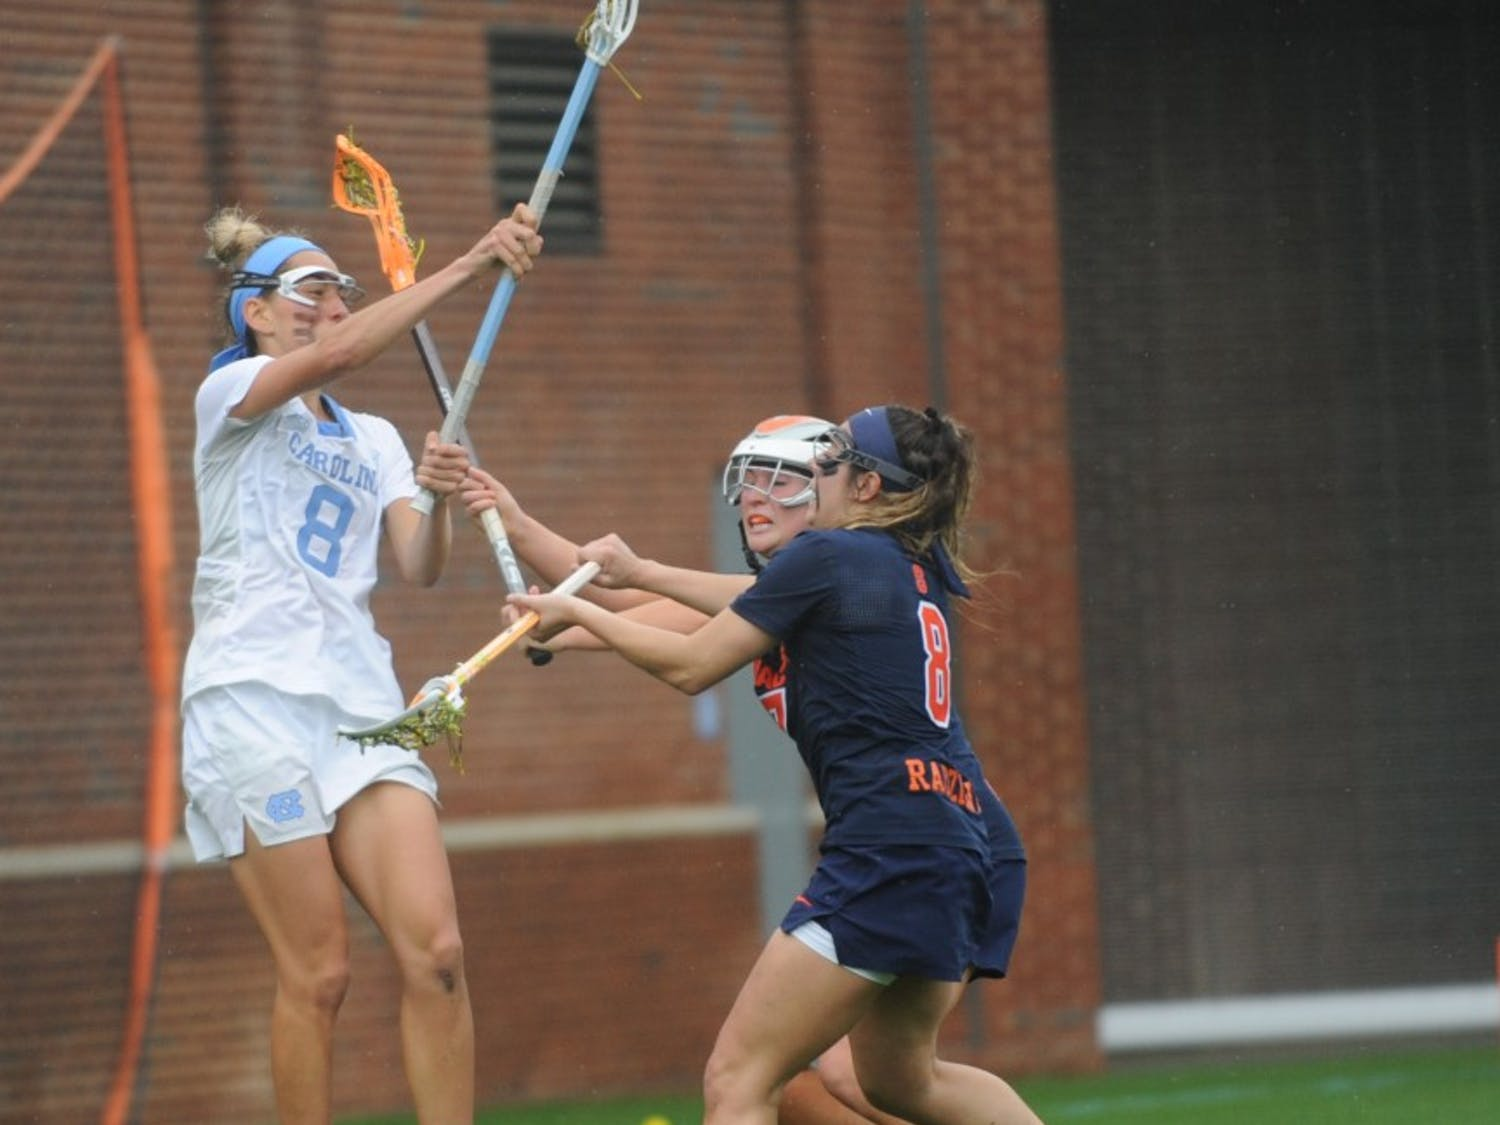 Women's lacrosse junior Katie Hoeg throws the ball over defenders during a game against Syracuse on April 13, 2019. UNC beat Syracuse 11-5.